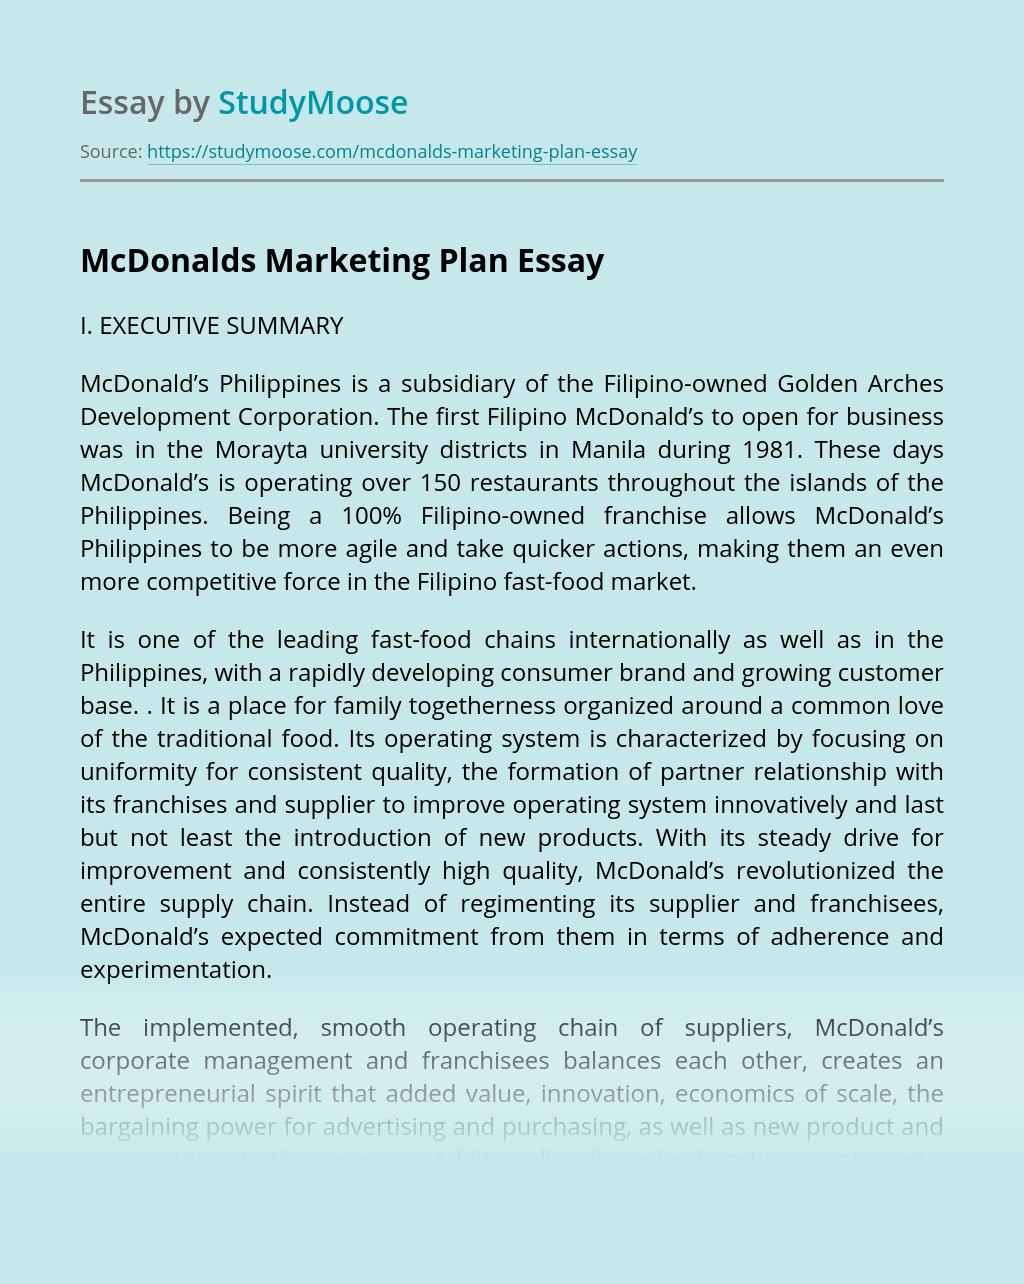 McDonalds Marketing Plan